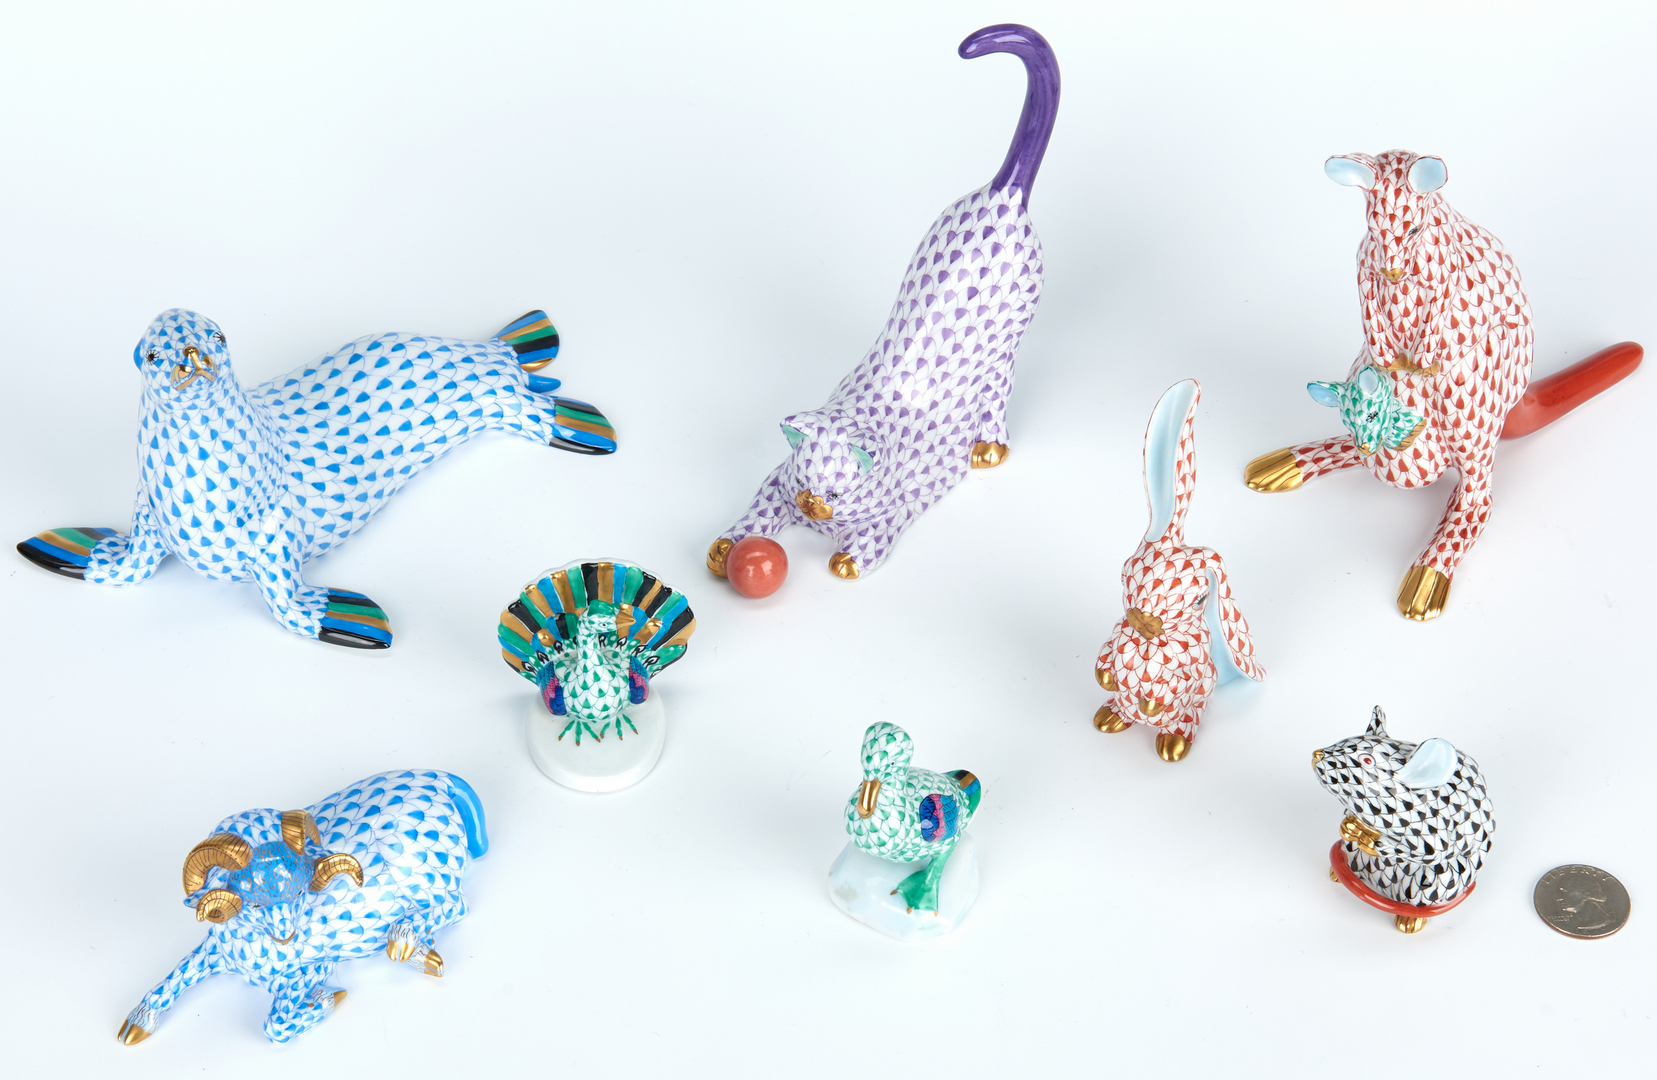 Lot 462: Group of 8 Herend Animals incl. Seal